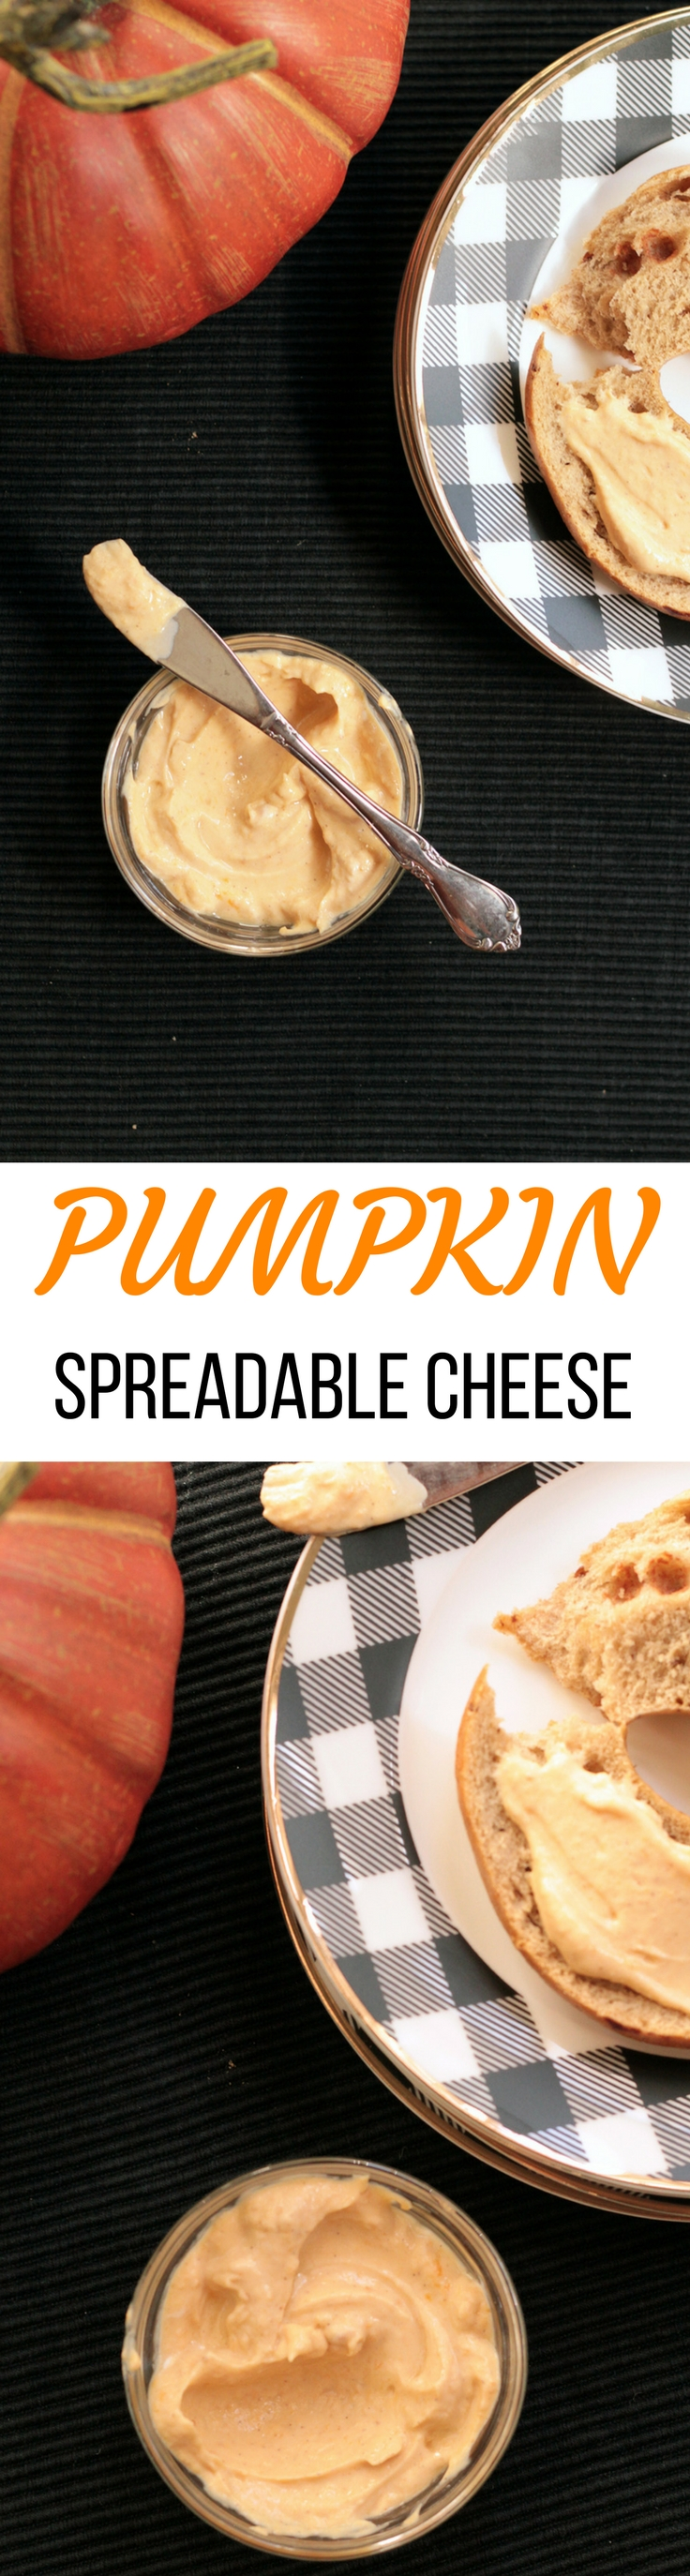 Pumpkin Spreadable Cheese is made with kefir, a probiotic rich food that has benefits  for GI health.